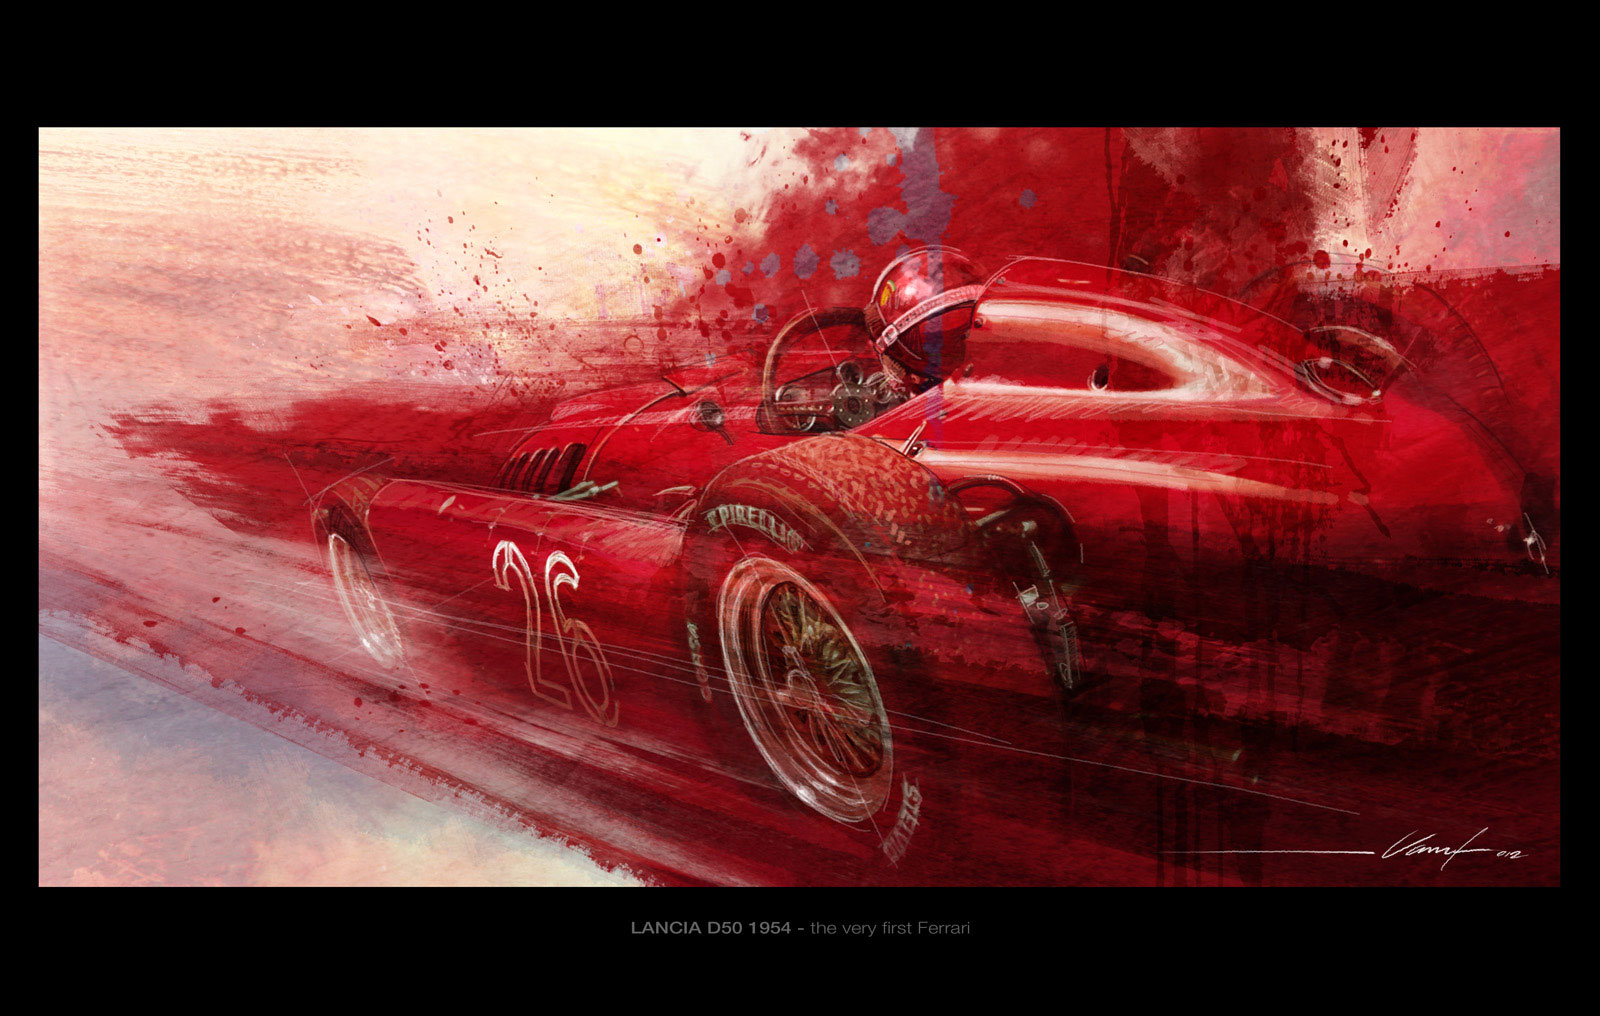 http://www.carbodydesign.com/media/2012/10/00-1954-Lancia-D50-Sketch-by-JeanLuc-Vanuf.jpg